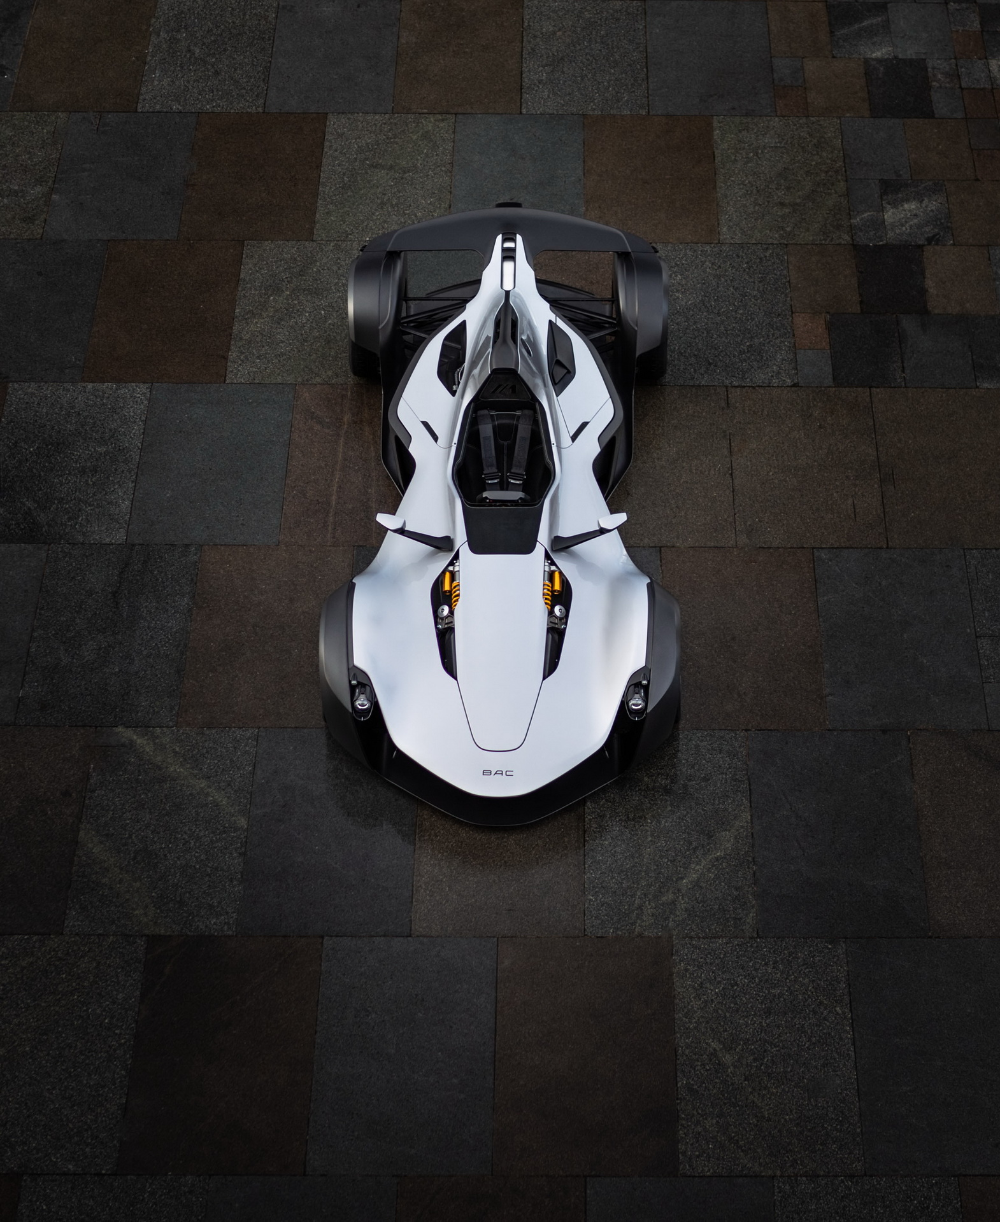 All-New BAC Mono Breaks Cover With 332 PS, 0-60 In 2.7 Sec | Carscoops